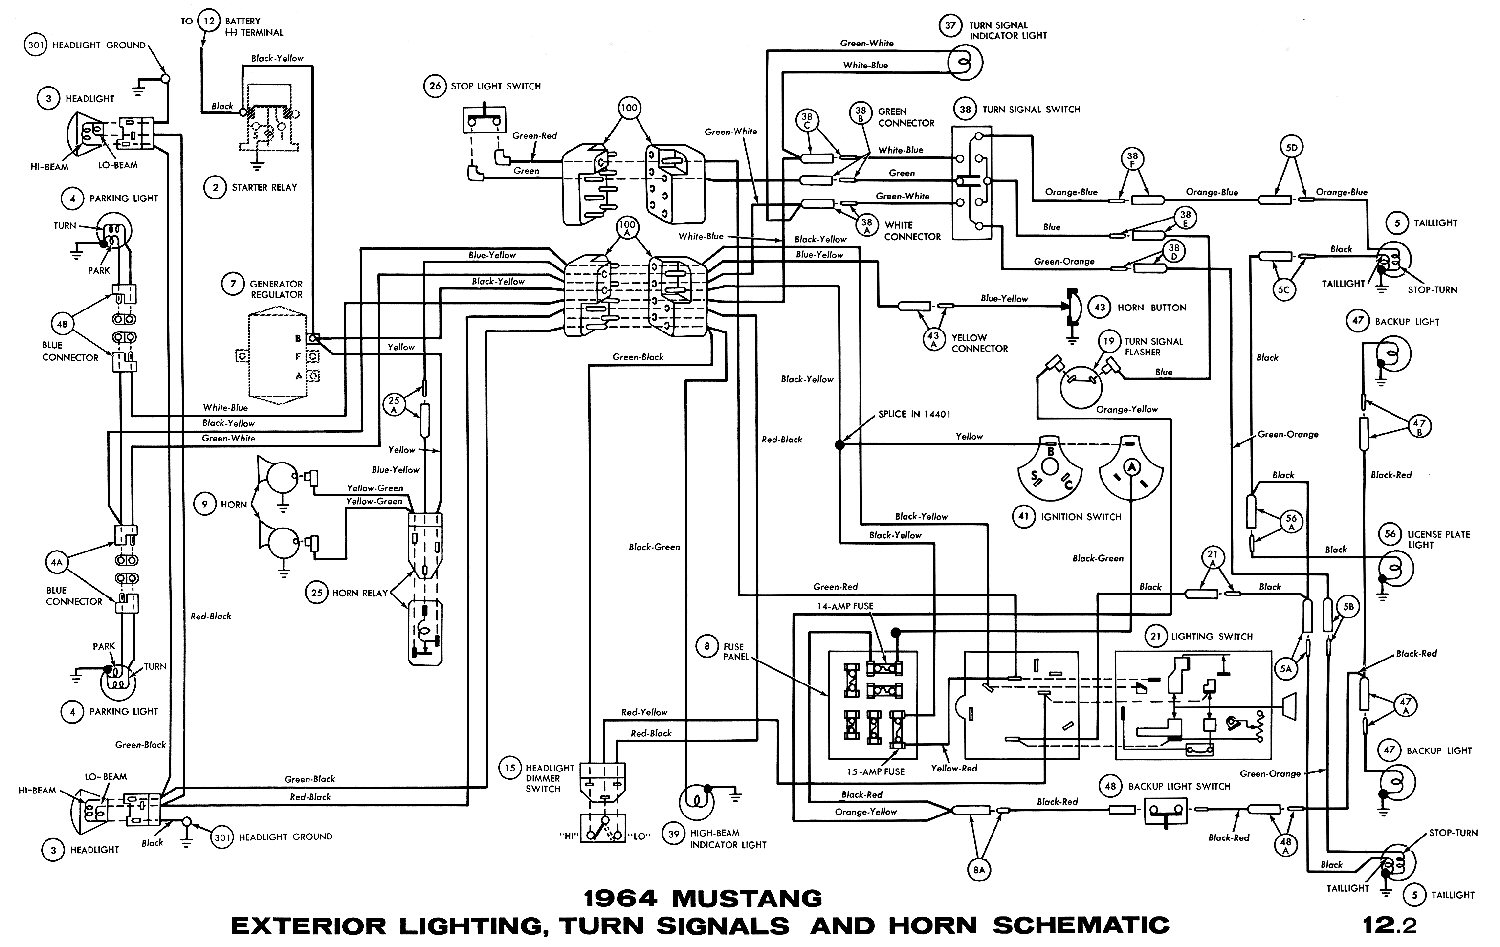 1964i 1964 mustang wiring diagrams average joe restoration 1969 mustang wiring diagram at bayanpartner.co